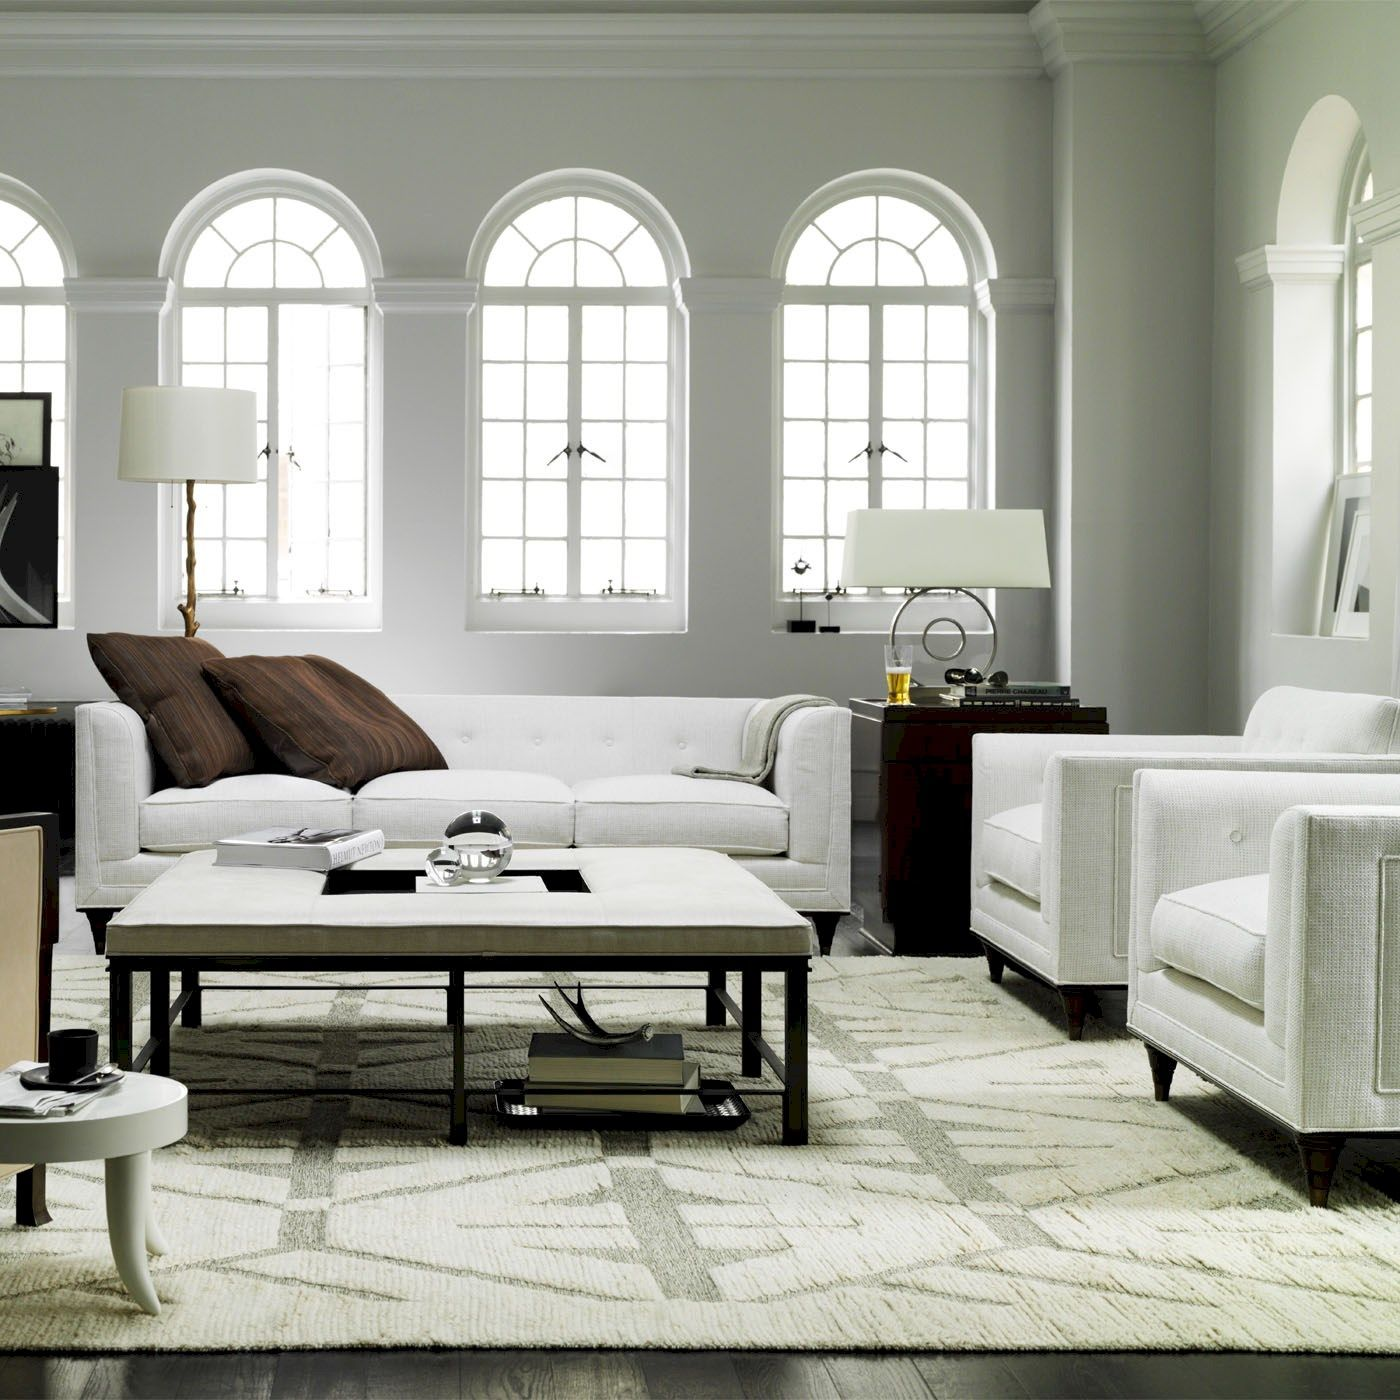 THE BILL SOFIELD COLLECTION Baker Furniture, Suite 60